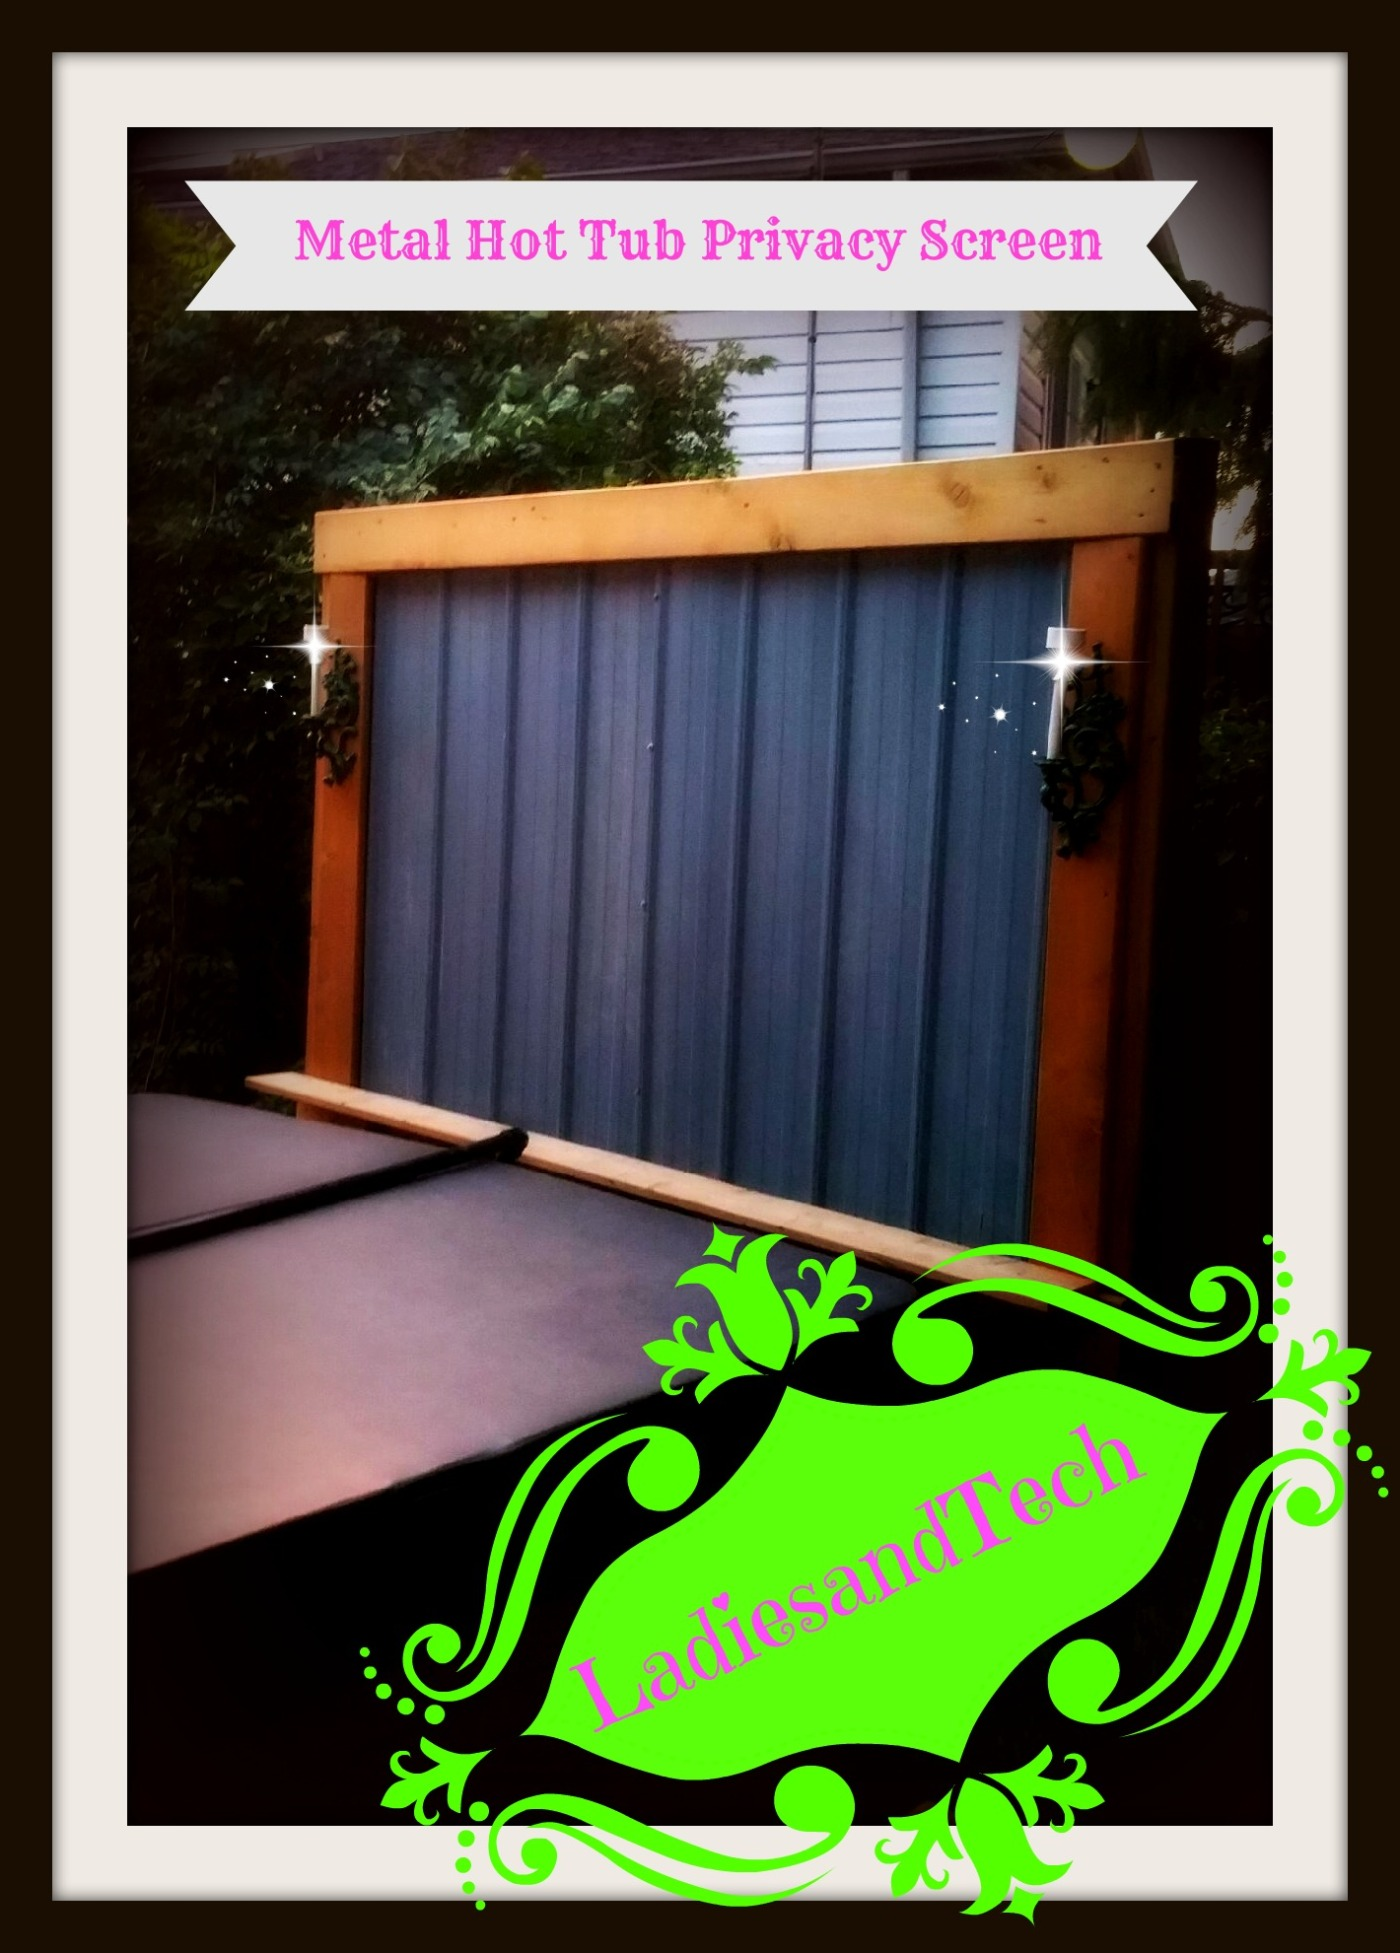 Hot Tub Privacy Screen Ladiesandtech